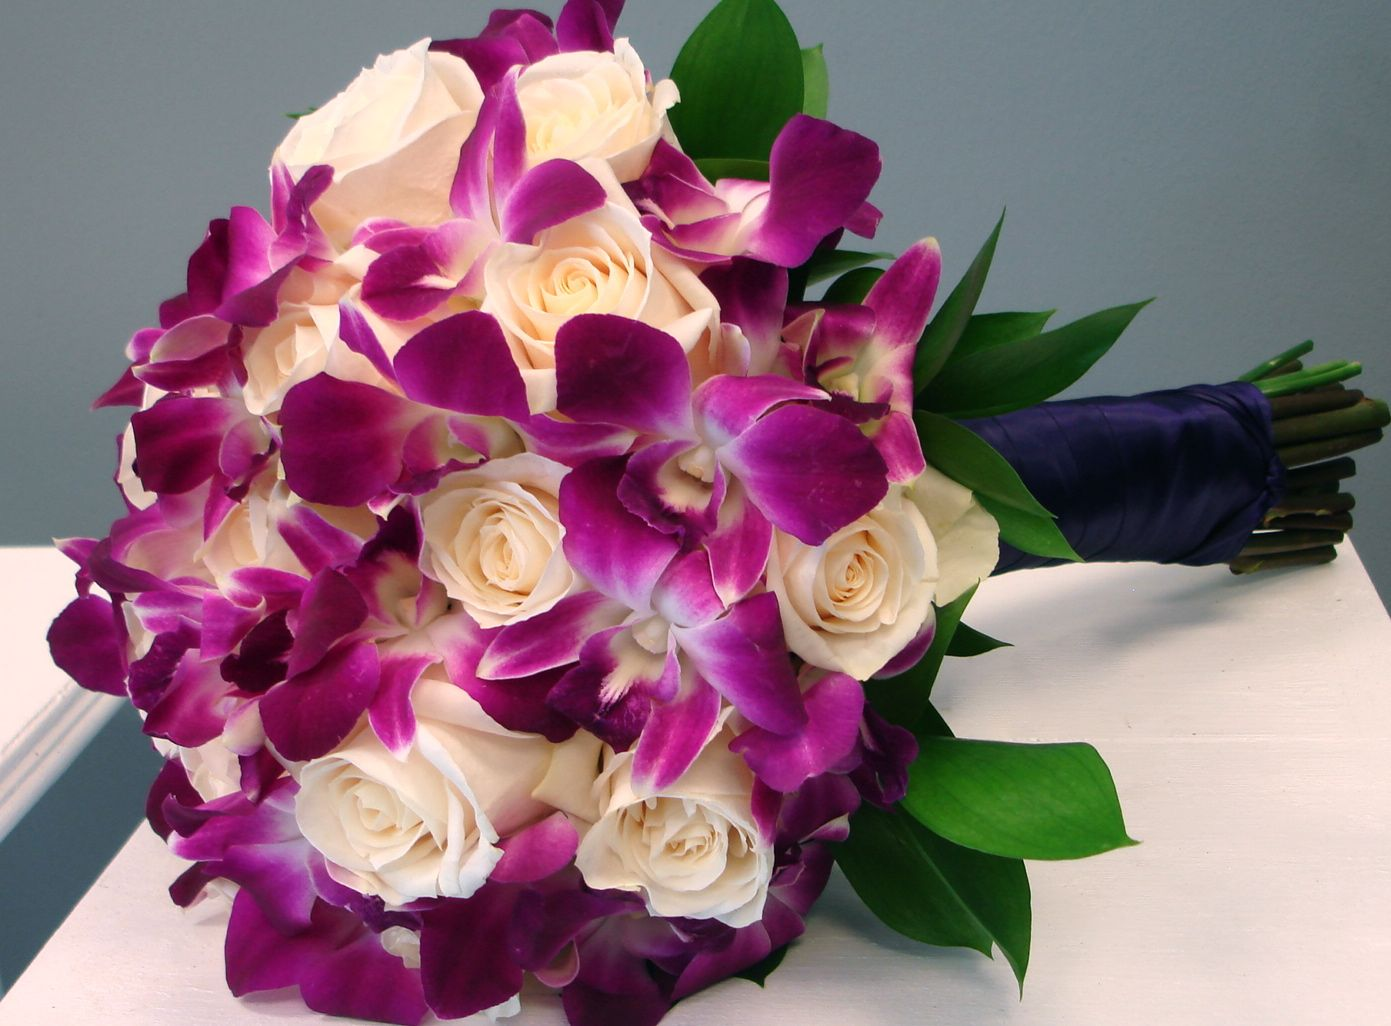 AwayWedding.com : The Hidden Meanings of Bridal Bouquets